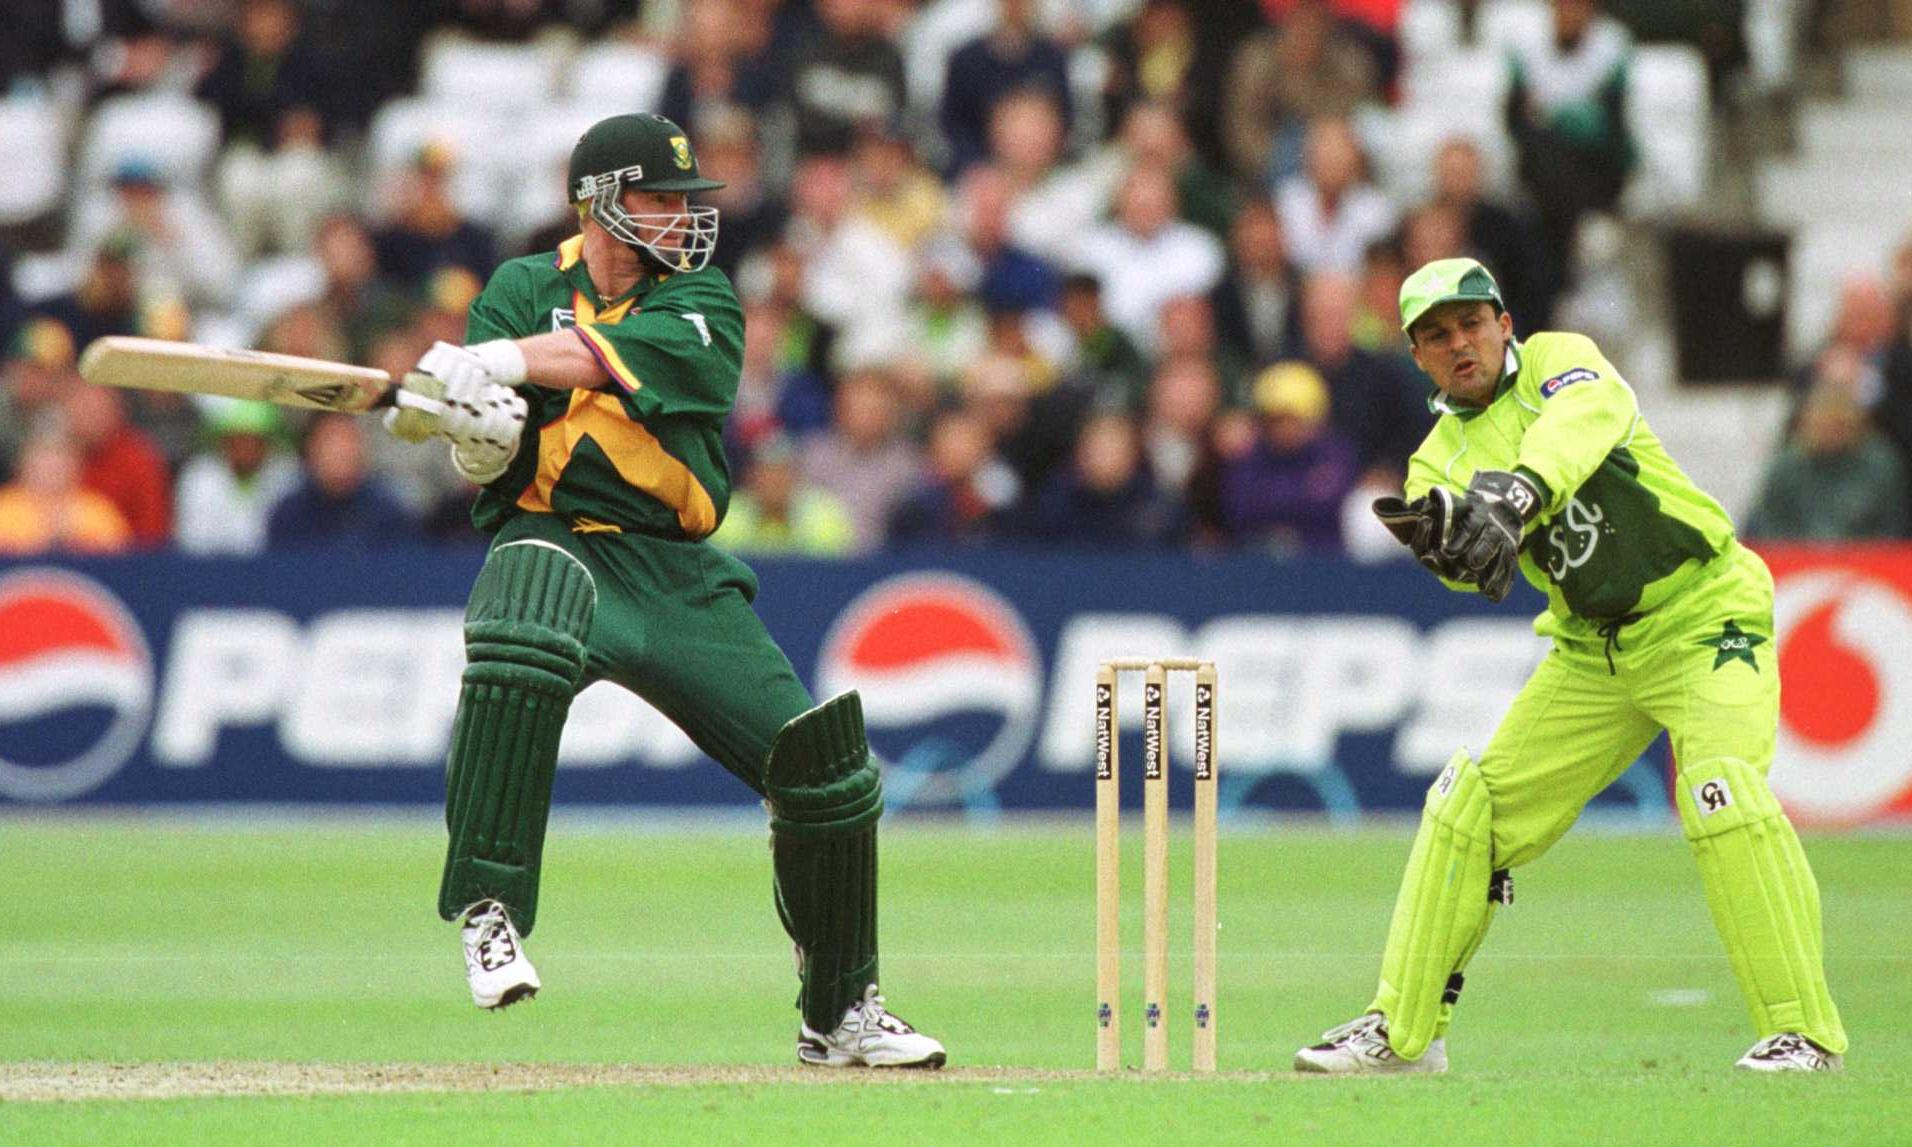 When Lance Klusener set the standard for cricketing all-rounders